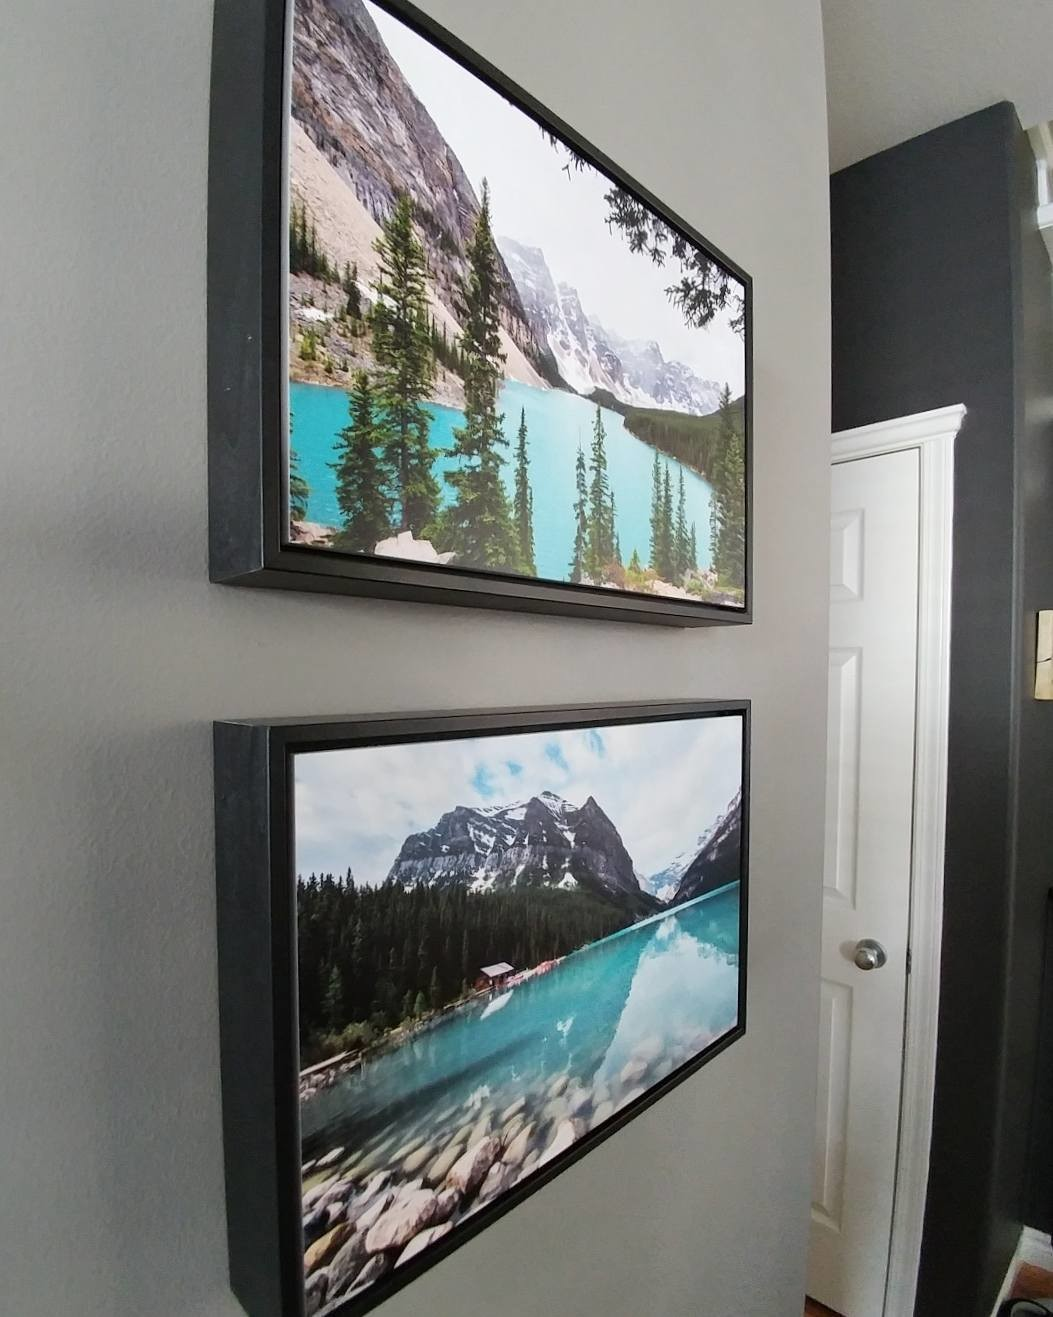 Photos of Banff, Alberta printed on Posterjack Gallery Boxes